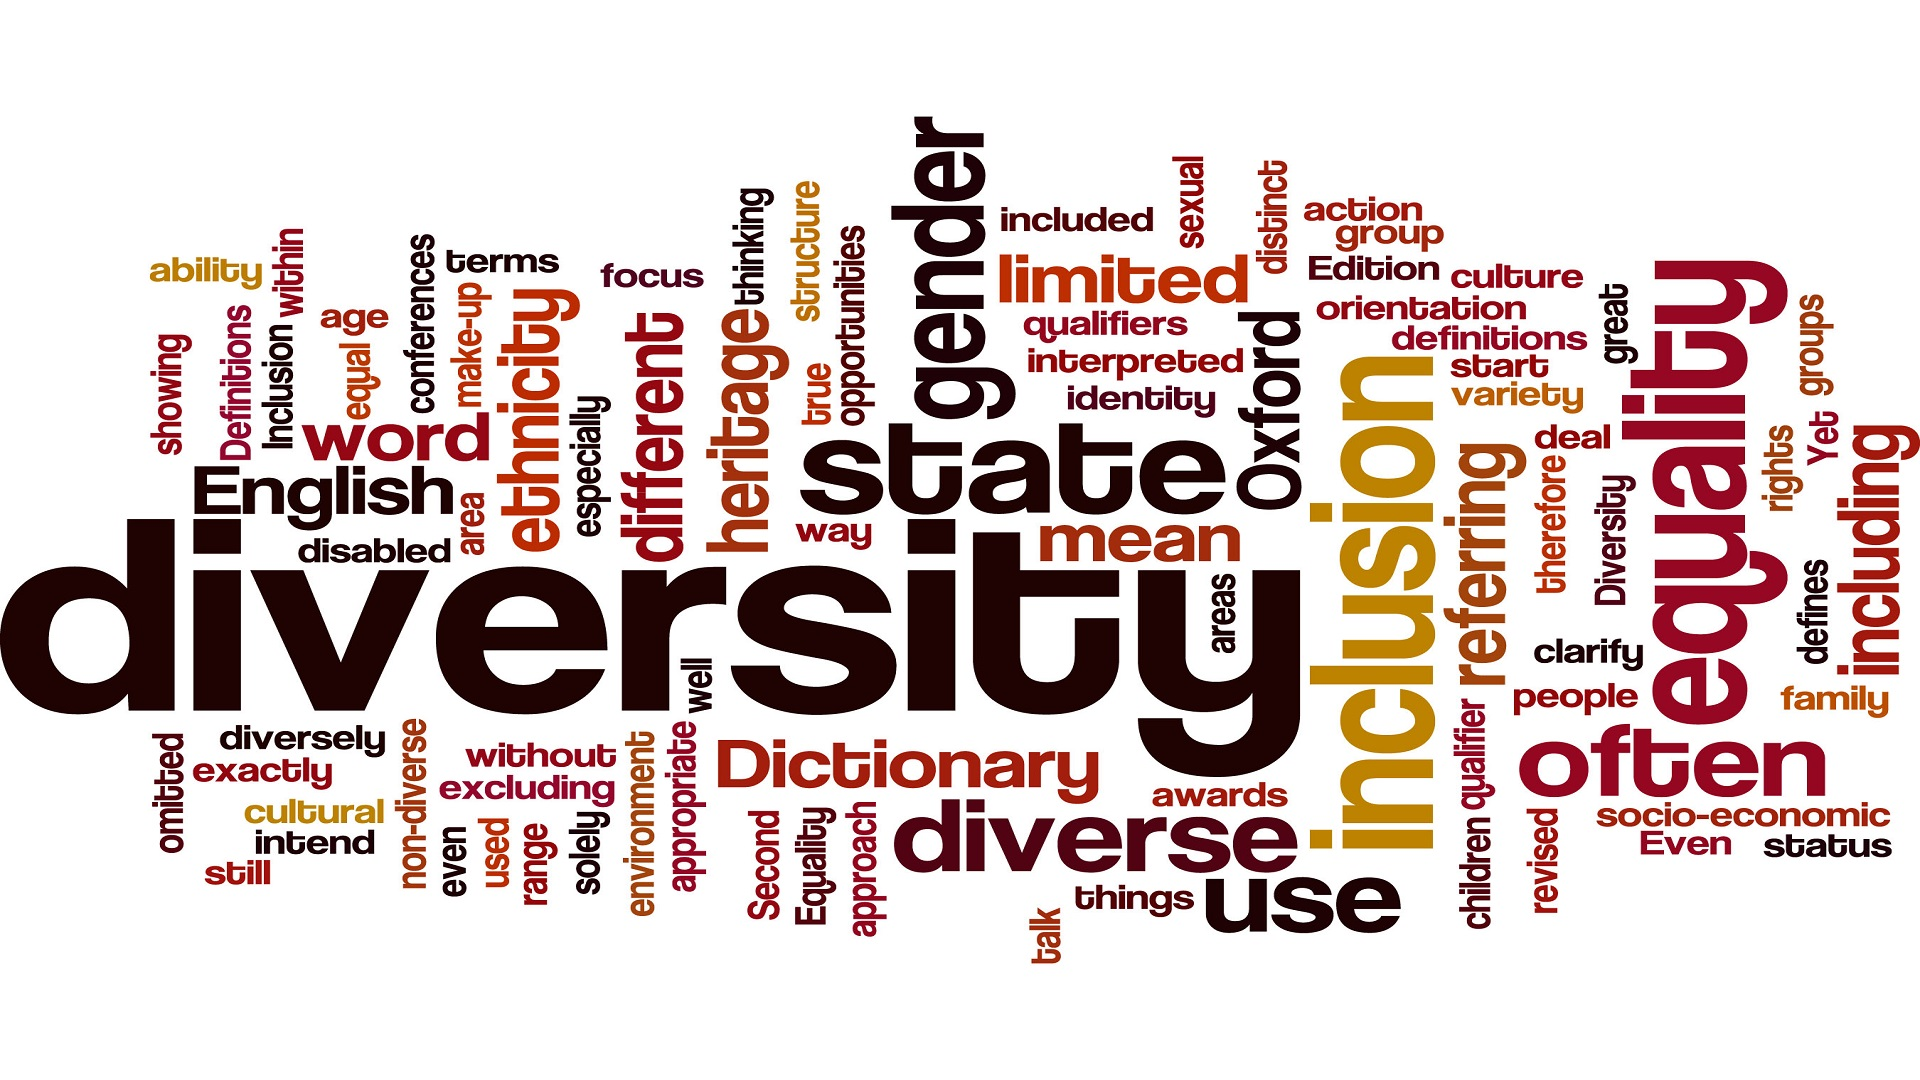 thinking about diversity and inclusion paper essay Soc 315 week 1 individual assignment thinking about diversity ia thinking about diversity and inclusion 2 papers apply critical-thinking skills to.